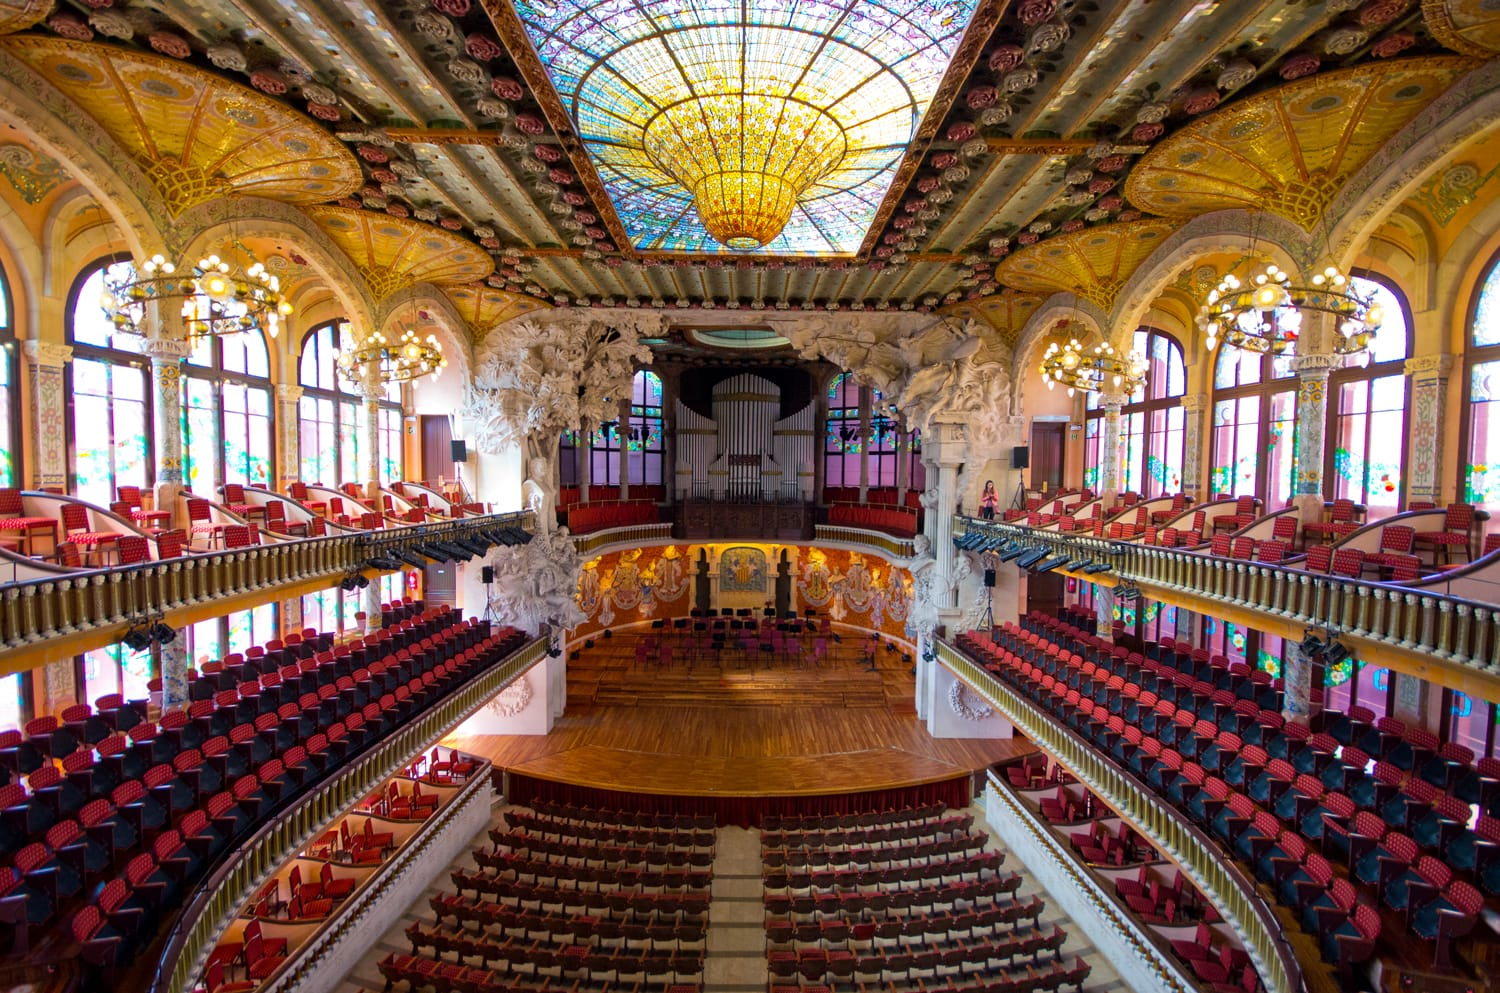 Palau de la Musica opera. Inaugurated in February 9, 1908, it is one of most famous concert hall in Spain.